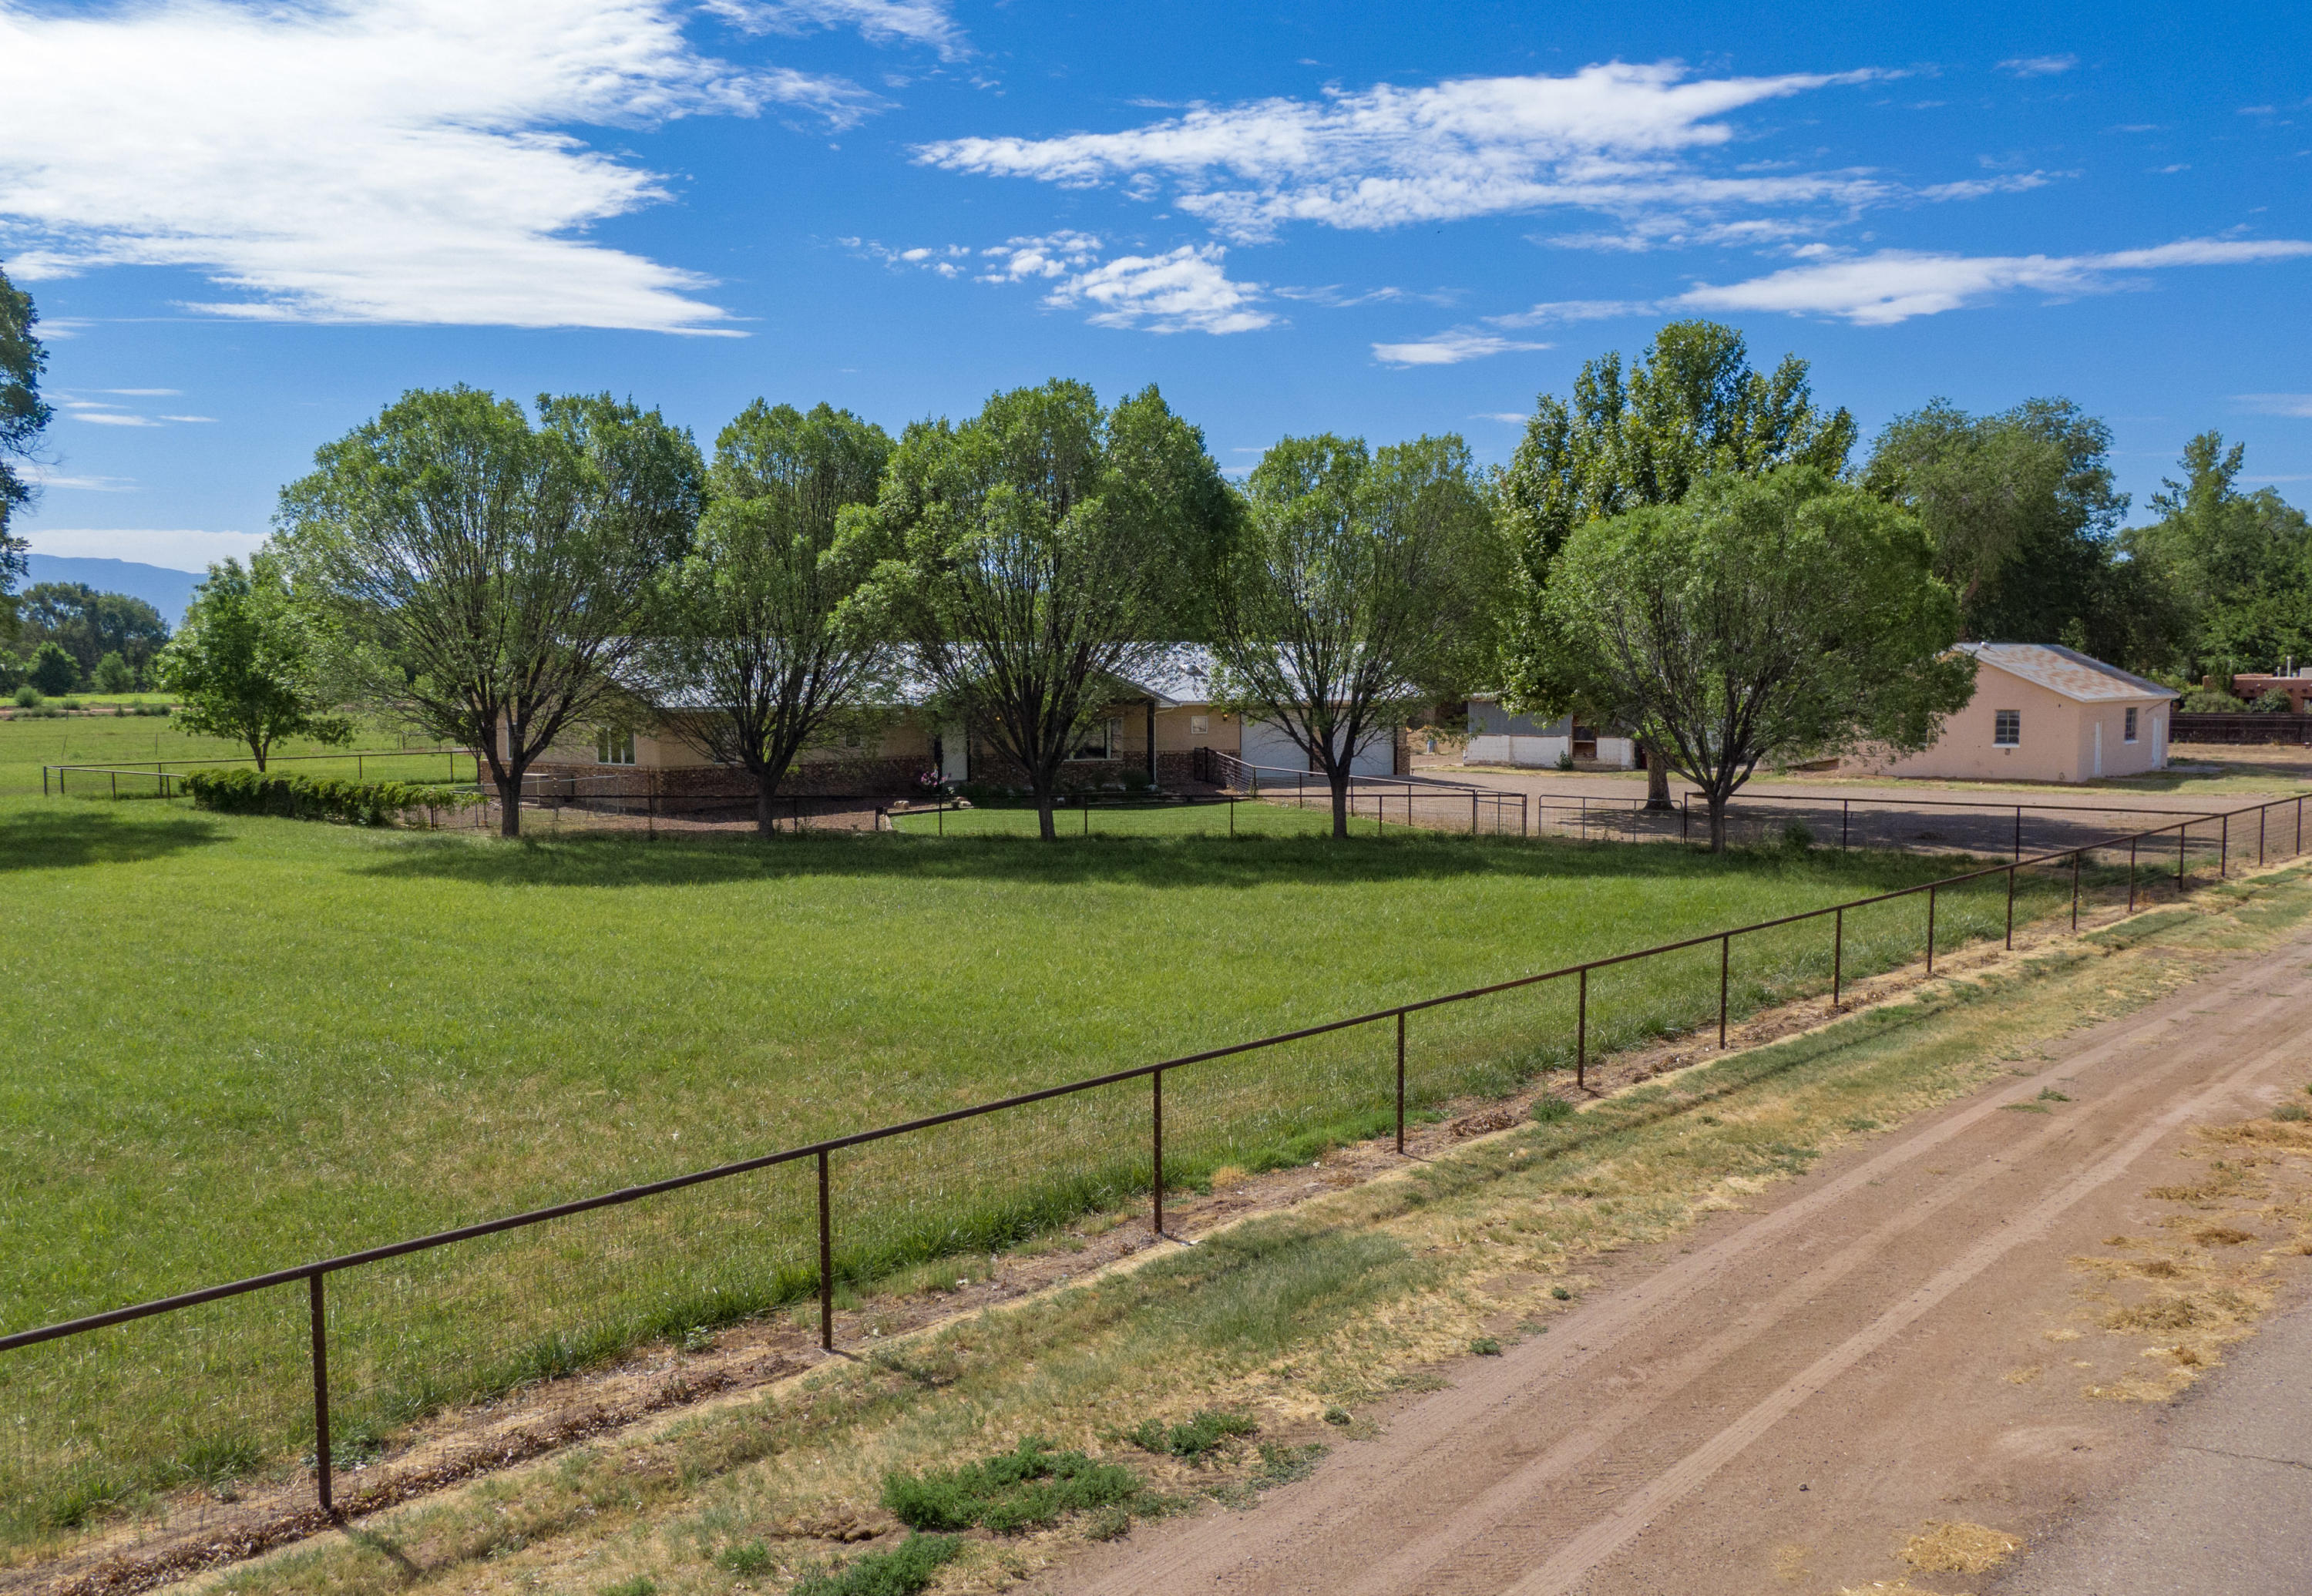 This beautiful custom built home in the heart of Bosque Farms is a farmers dream! On 8.22 acres this 2463 sqft home consists of 4 bedrooms and 2.5 bathrooms. The open concept floor plan, over-sized dining room, and living room w/ vaulted beamed ceilings and cozy fireplace is perfect for entertaining. Take the fun outdoors w/ a large covered porch overlooking the swimming pool and great views of the pasture and Mountains. Cross fencing separates the back yard from the field which is planted w/ approx. 5 acres of pasture + plenty more space perfect to expand the pasture or add horse stalls and/or an arena. Approx 920 sqft work shop, large storage building all w/ power, and 3 phase available if needed, additional hay storage, stock tank., irrigation +2 wells.  Must See!